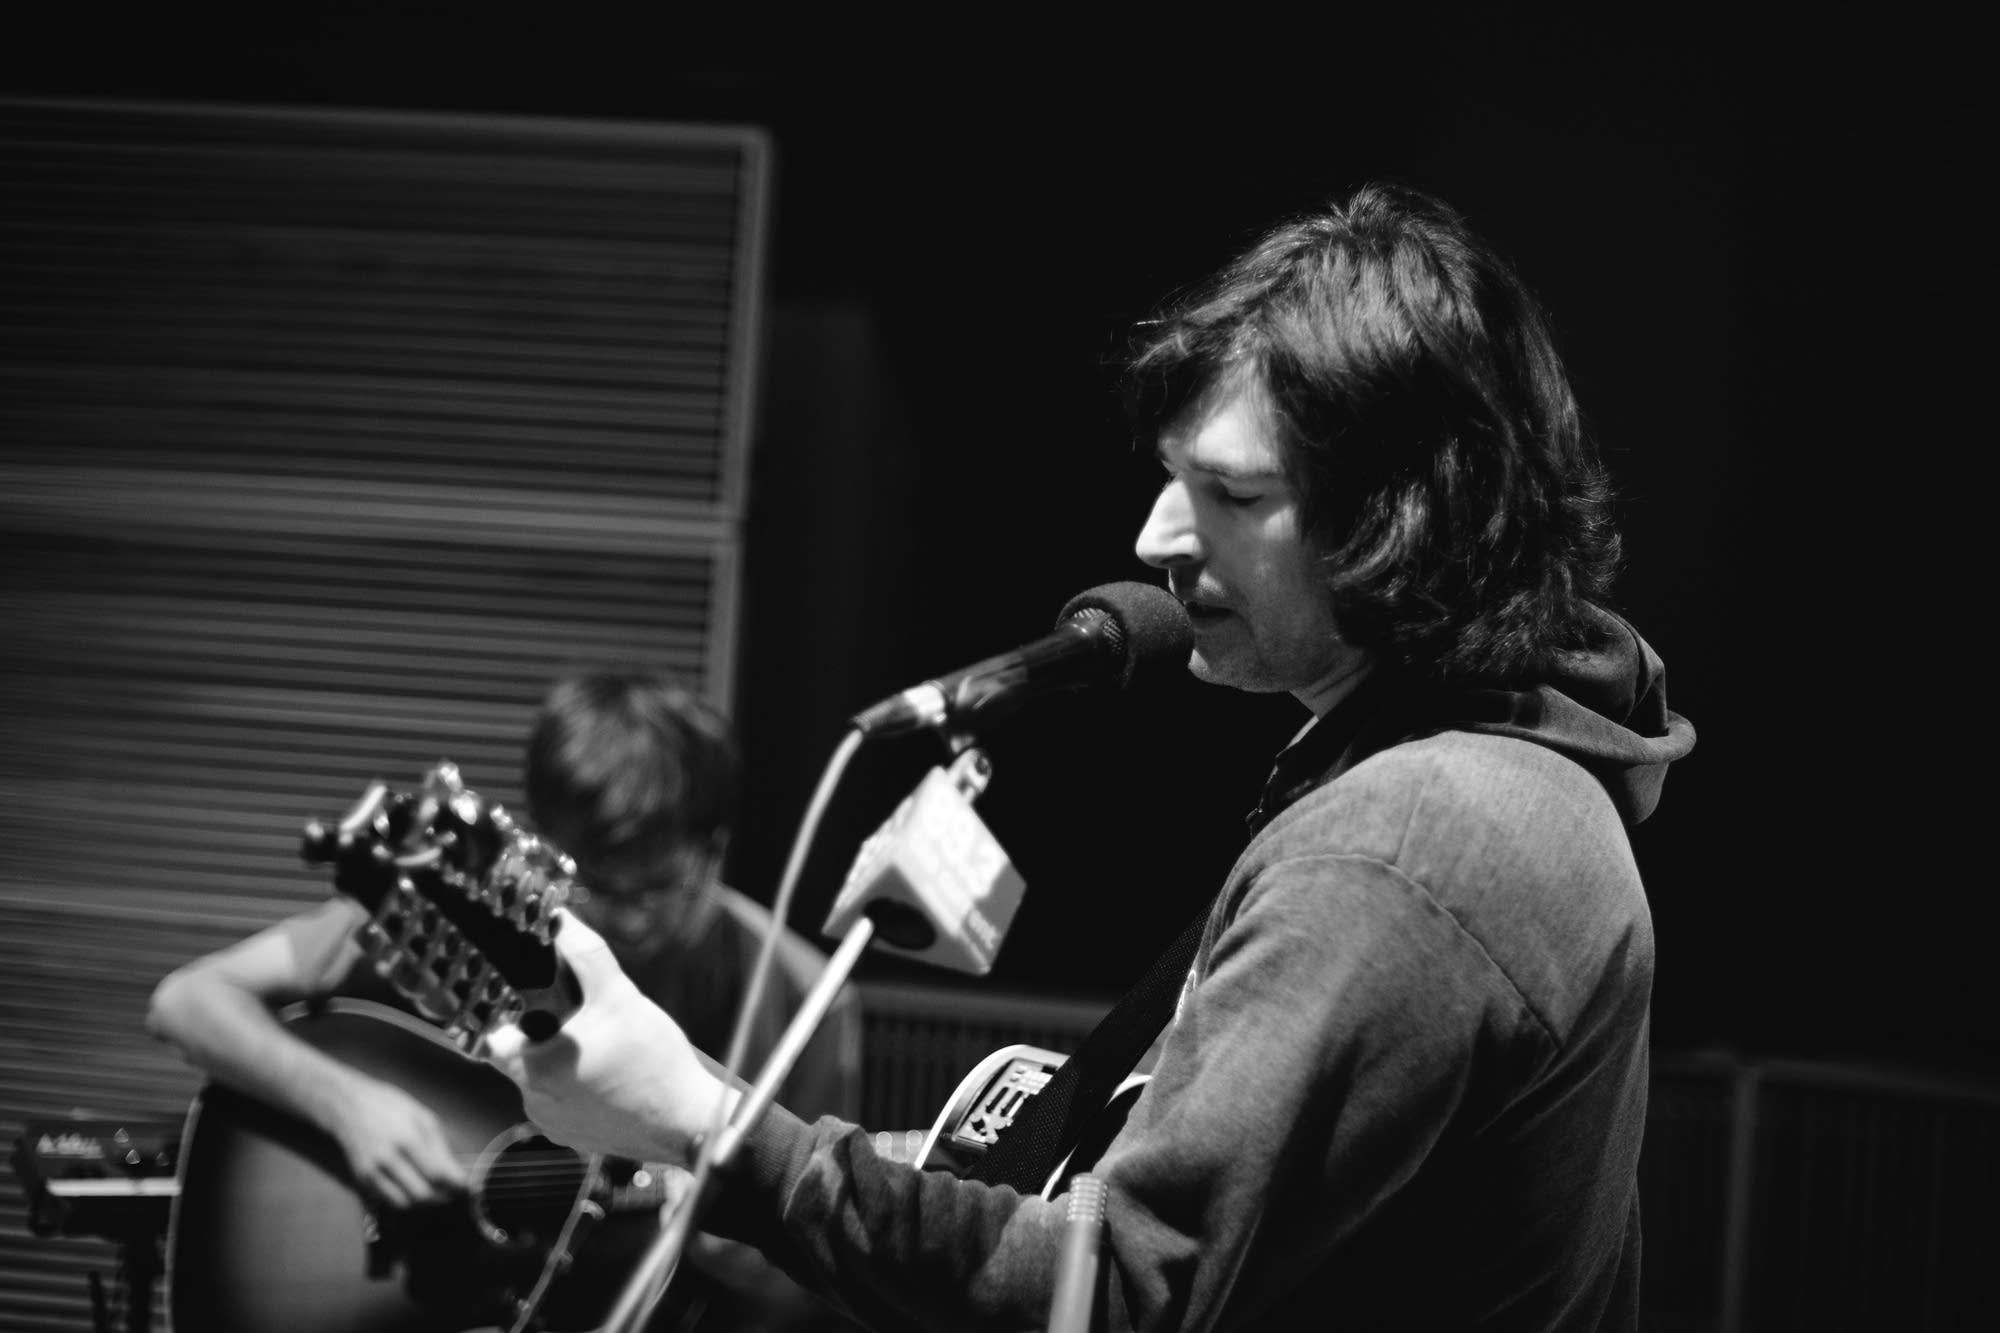 Pete Yorn performs in The Current studio